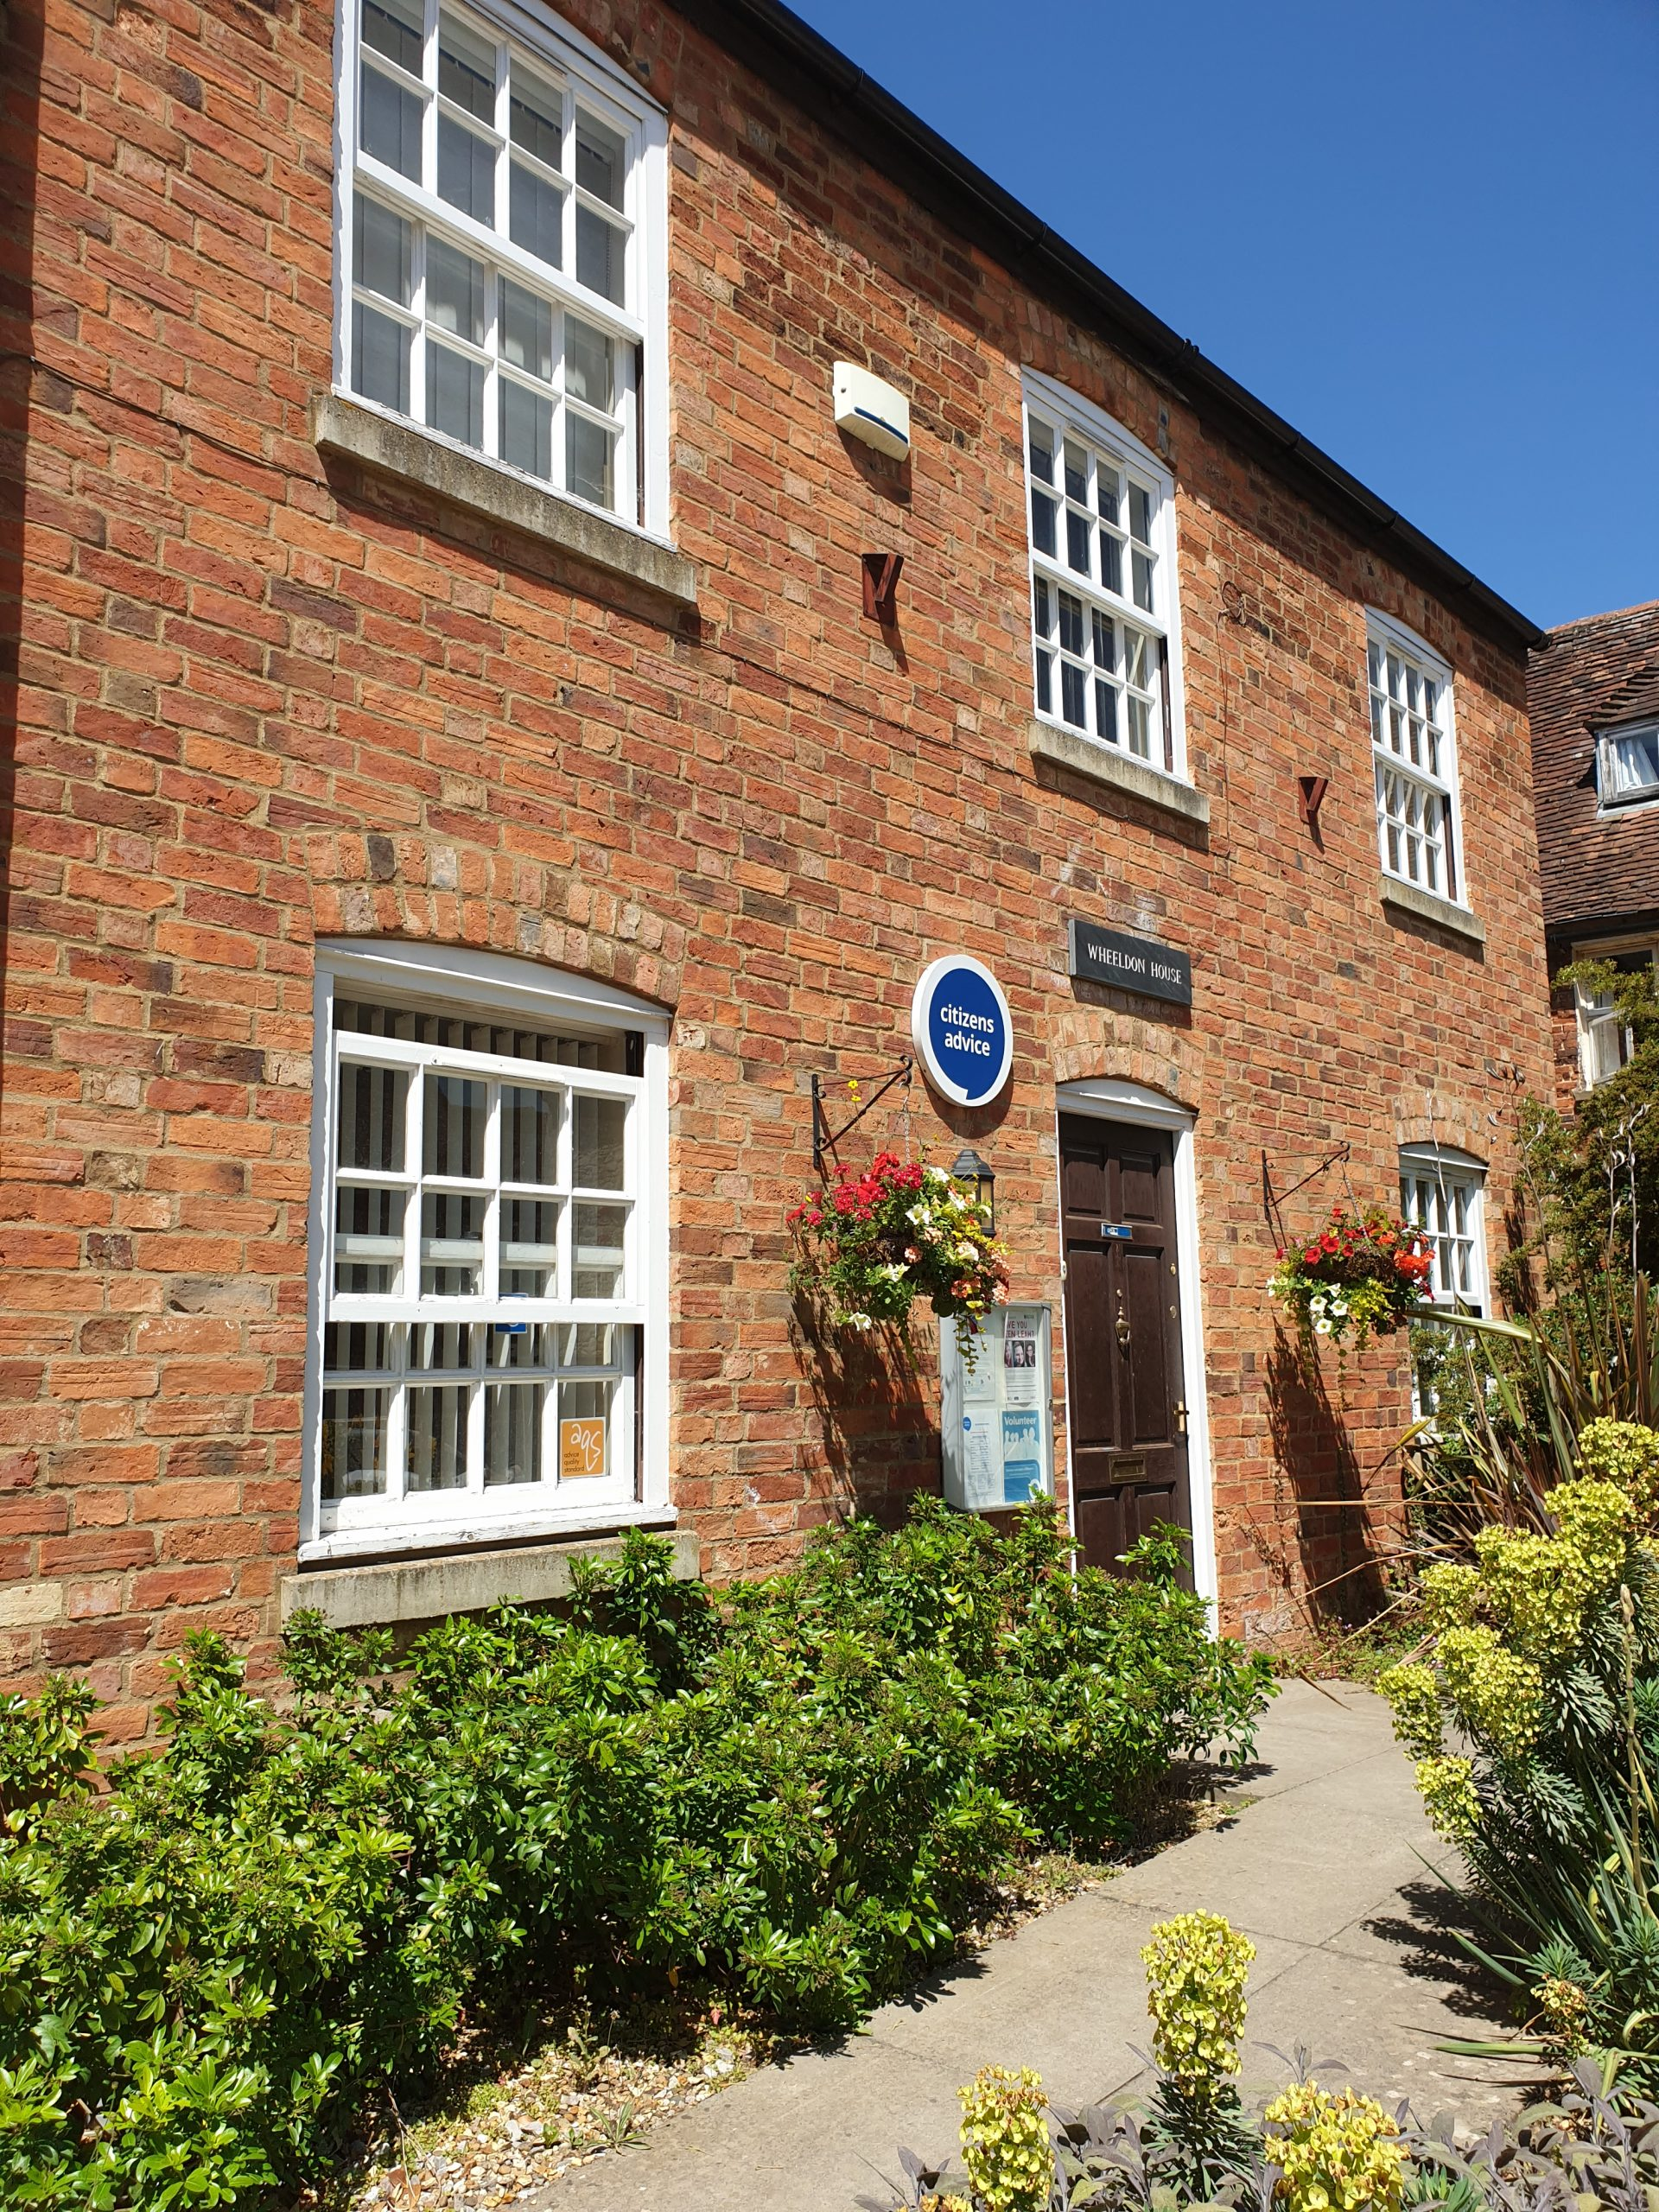 Wheeldon House, home of Citizens Advice in Buckingham part of Citizens Advice Aylesbury Vale